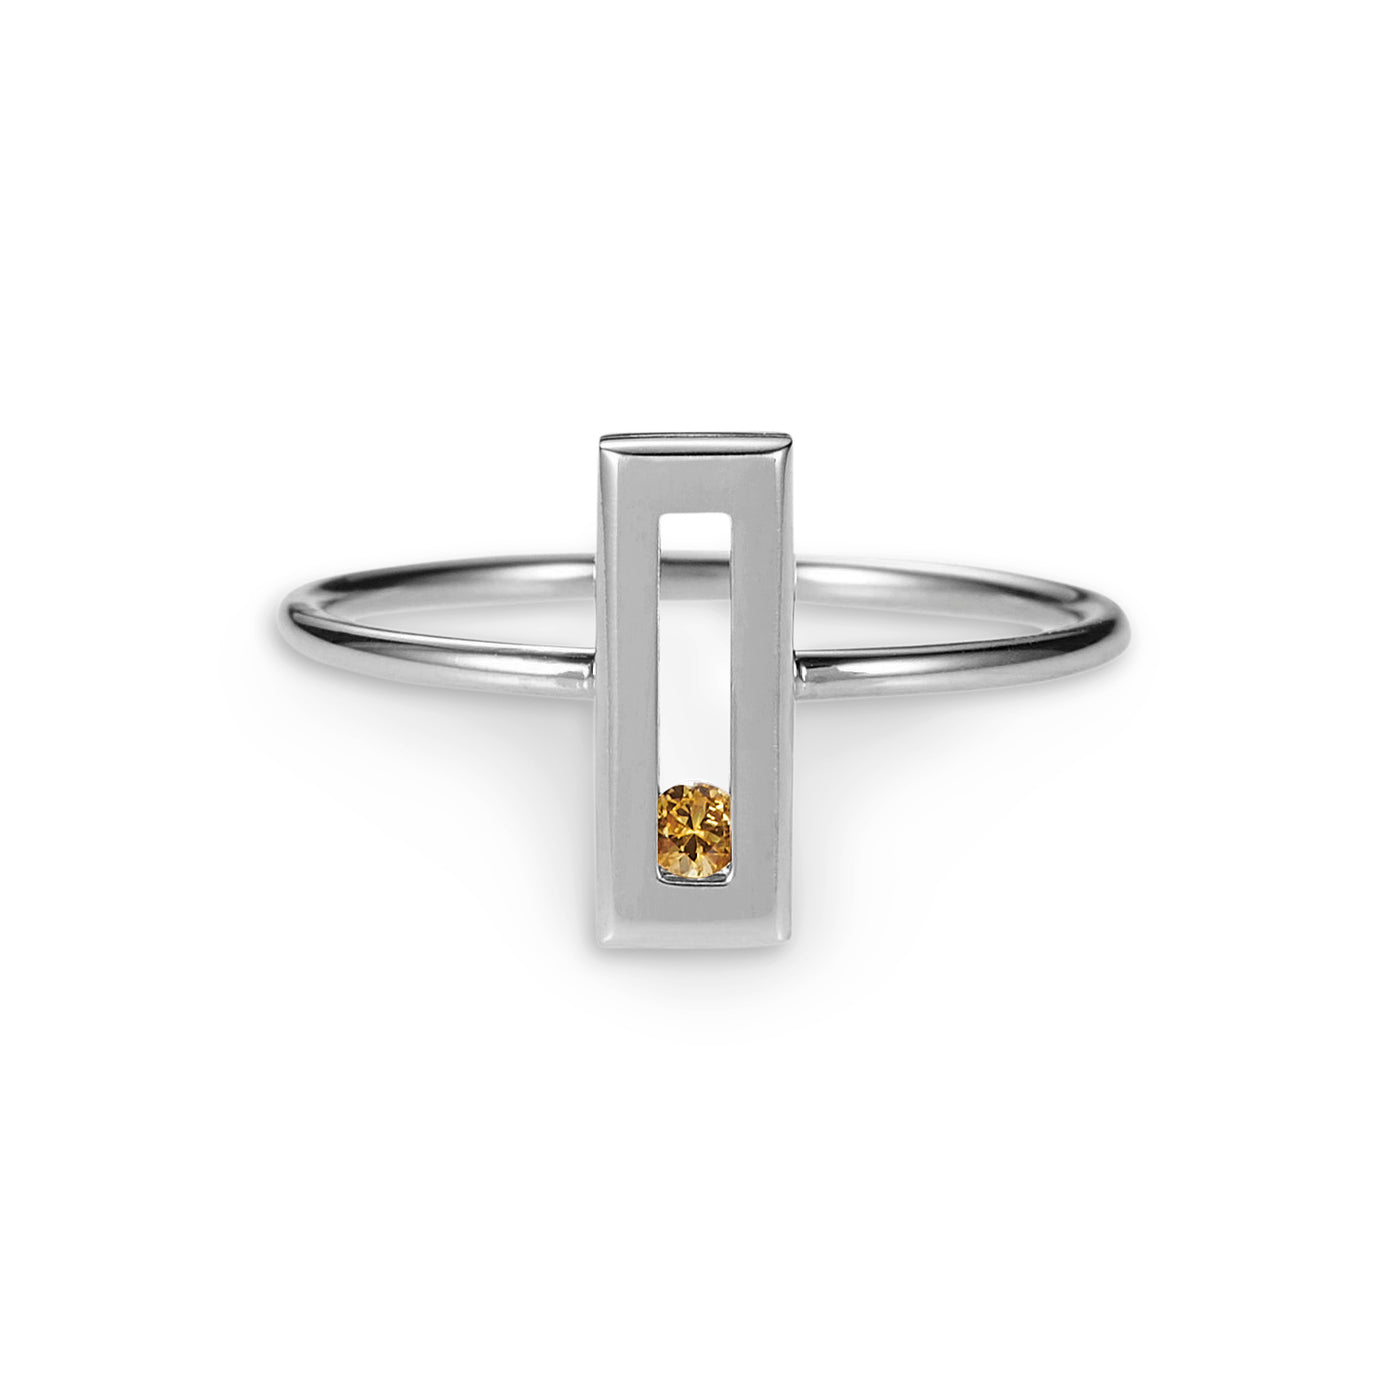 Luke Rose Jewellery silver yellow sapphire stack ring